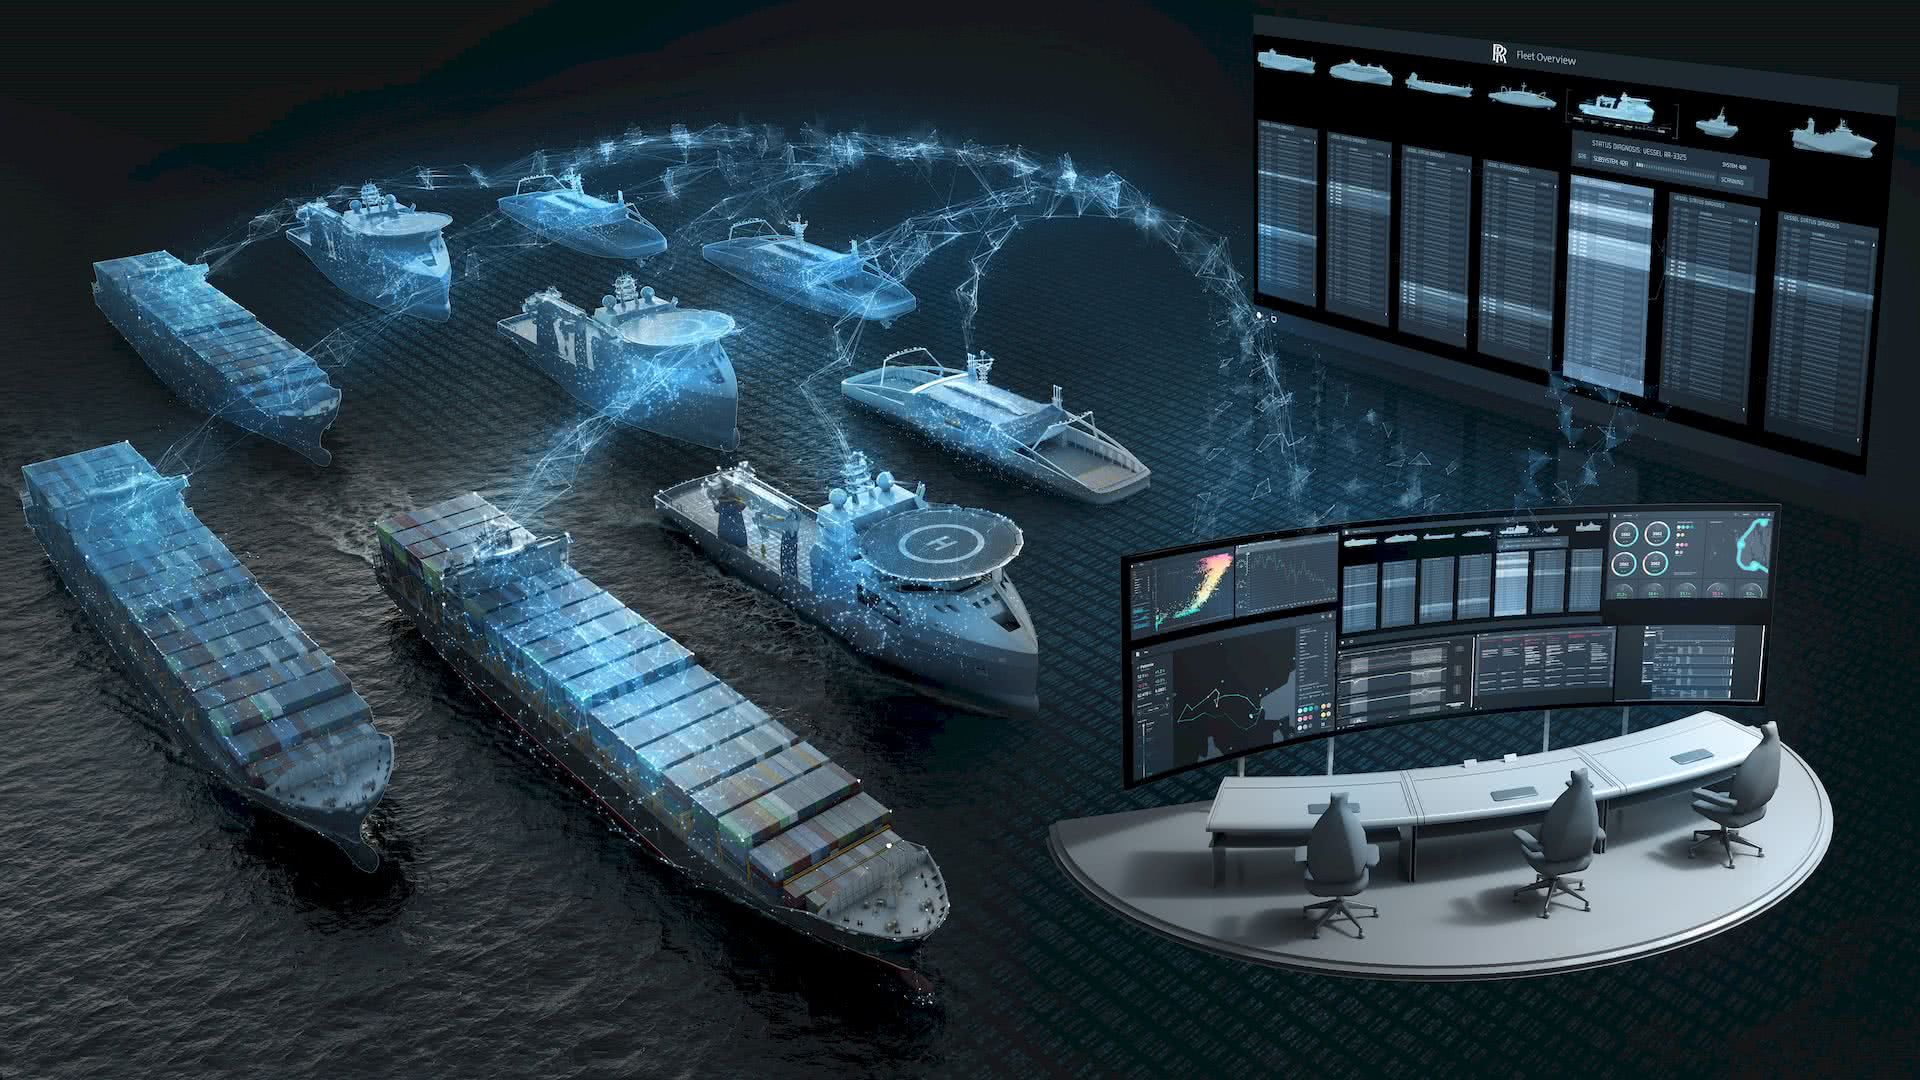 Equipment & Health monitoring for Ships and Yachts